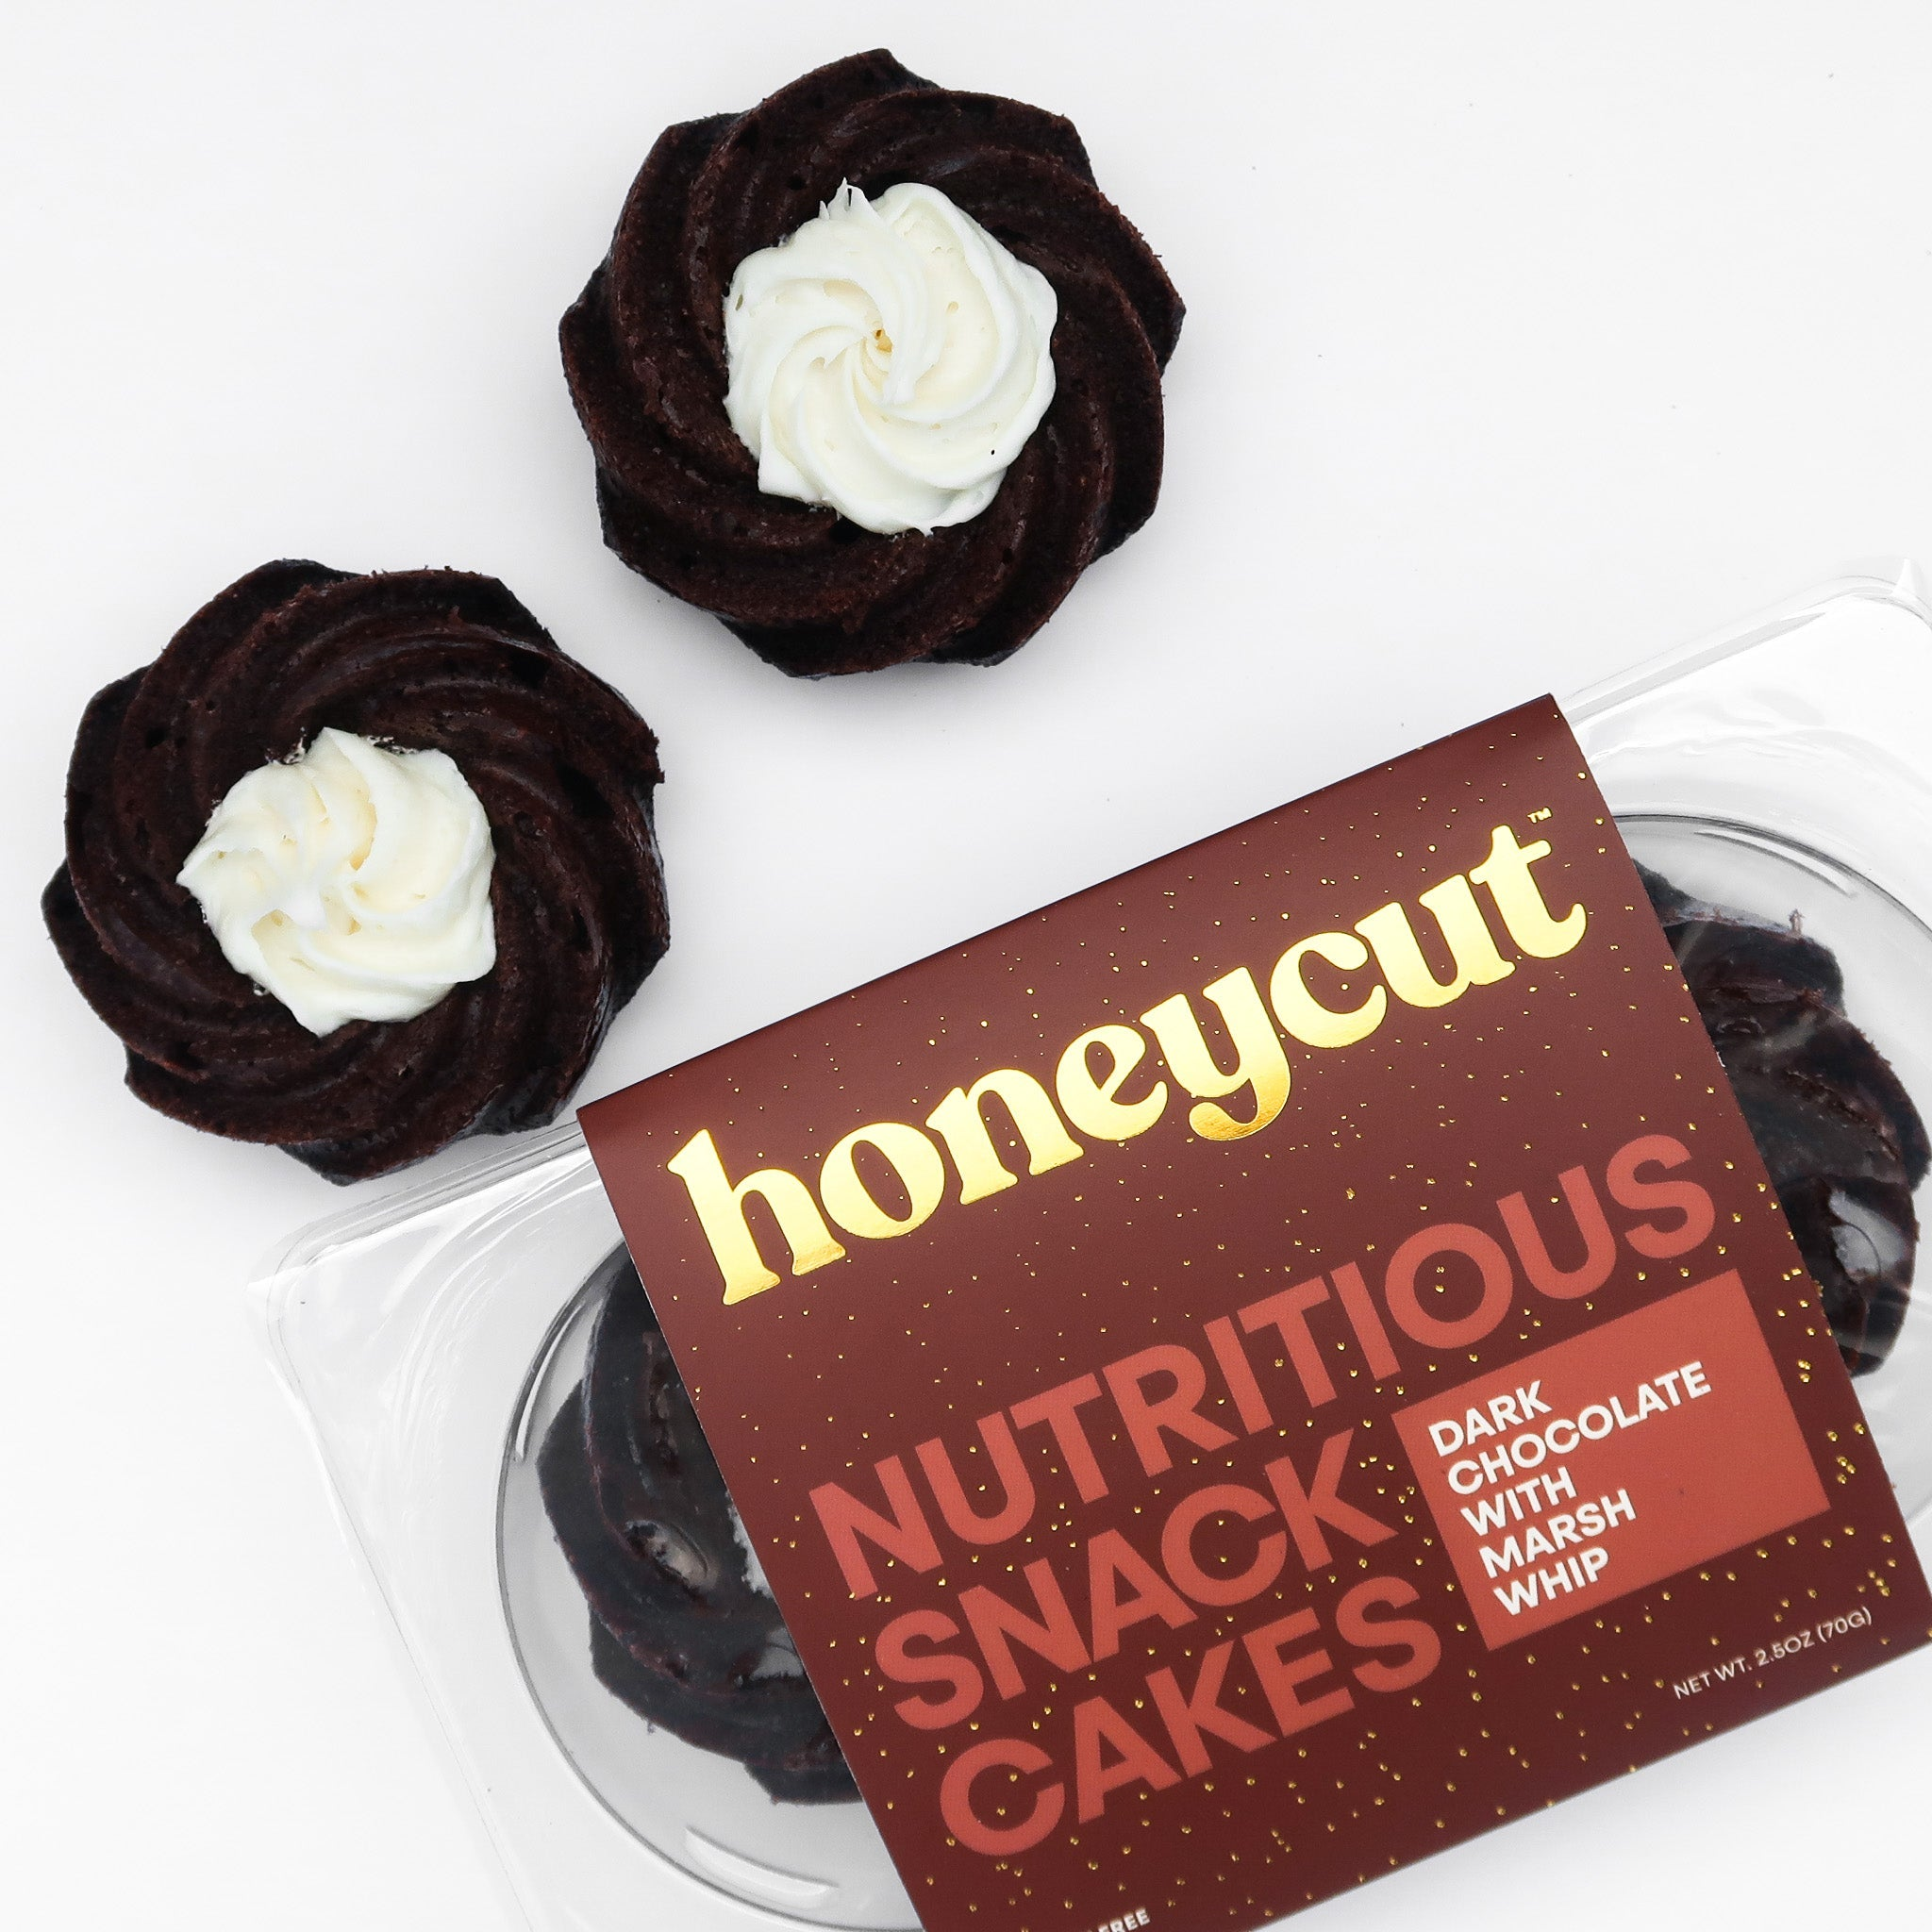 Dark Chocolate Snack Cake | 2.5oz - Tastermonial - Honeycut Kitchen